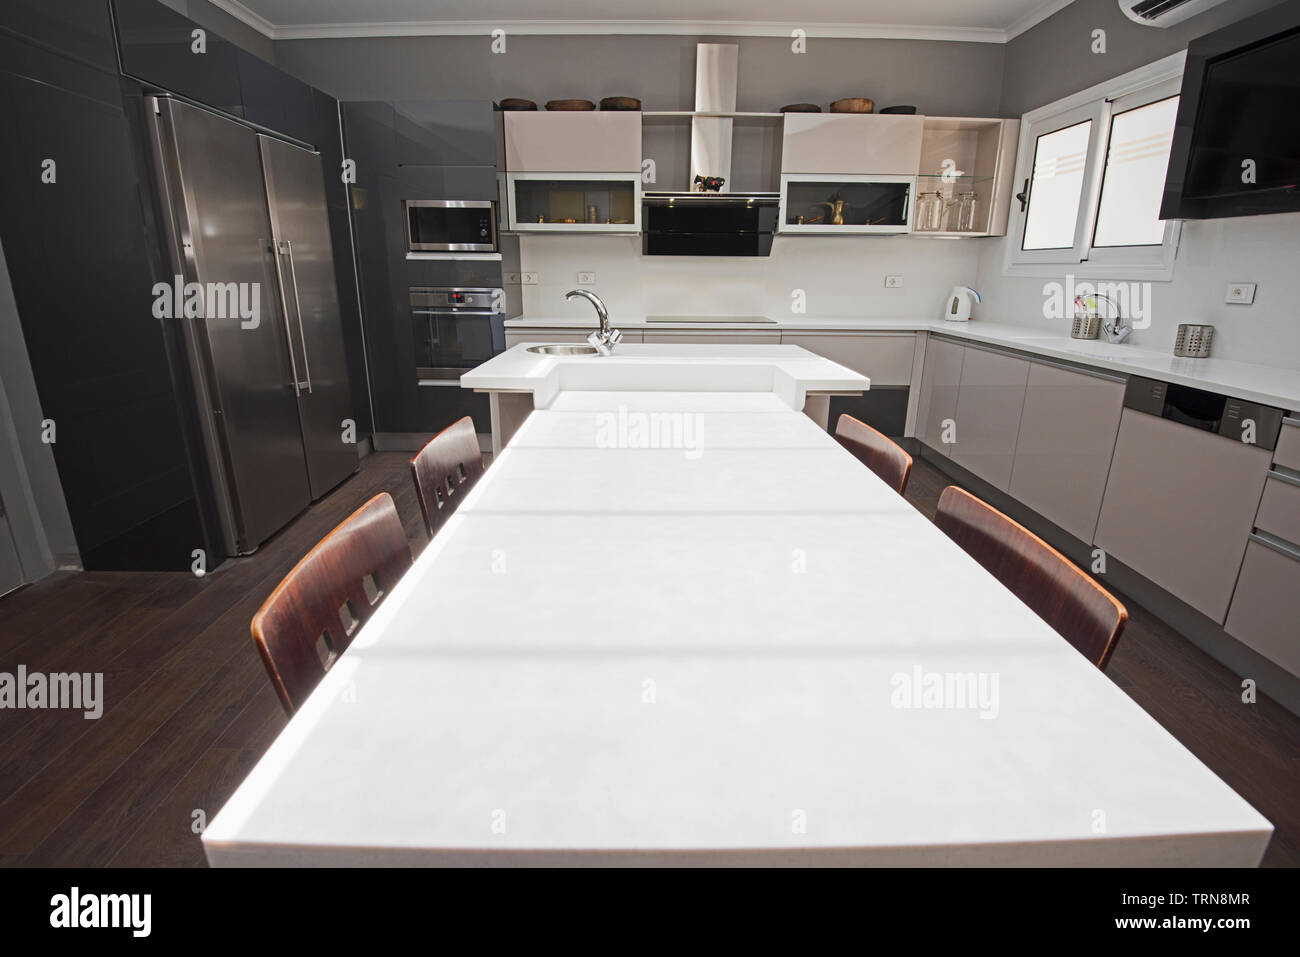 Interior Design Decor Showing Modern Kitchen With Cupboards In Luxury Apartment Showroom Stock Photo Alamy